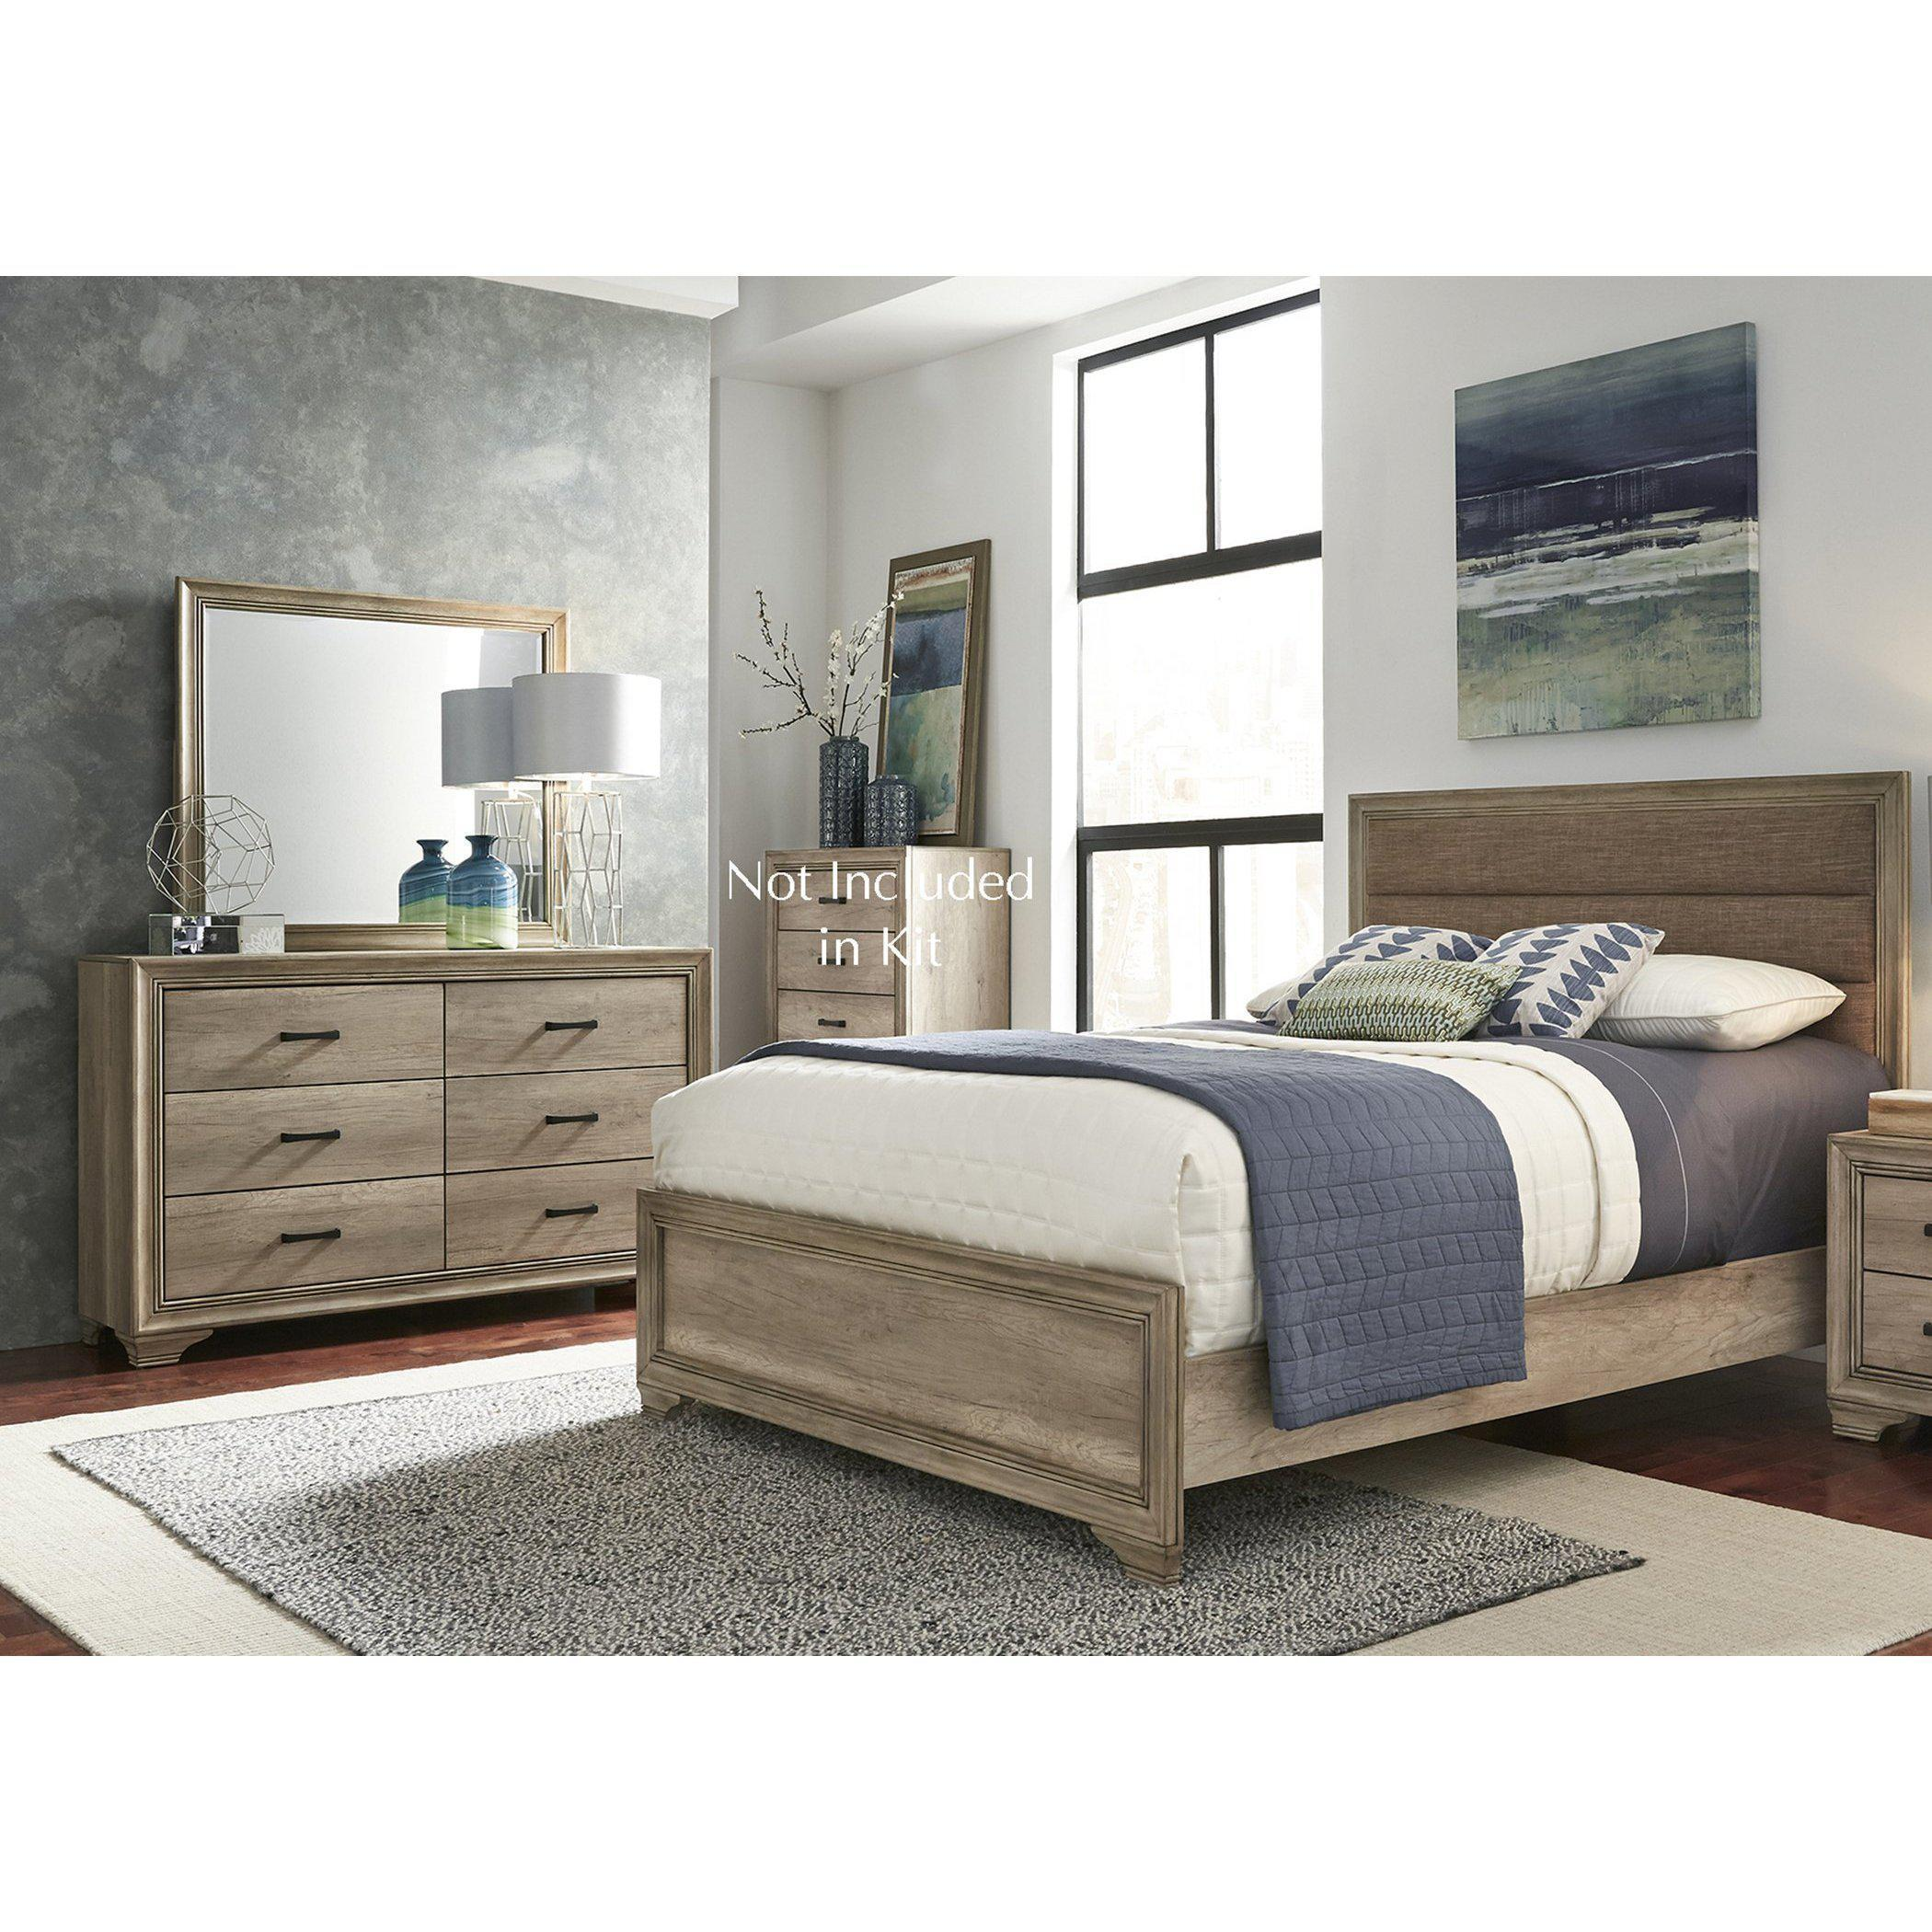 Sun Valley Nikko Bedroom Set